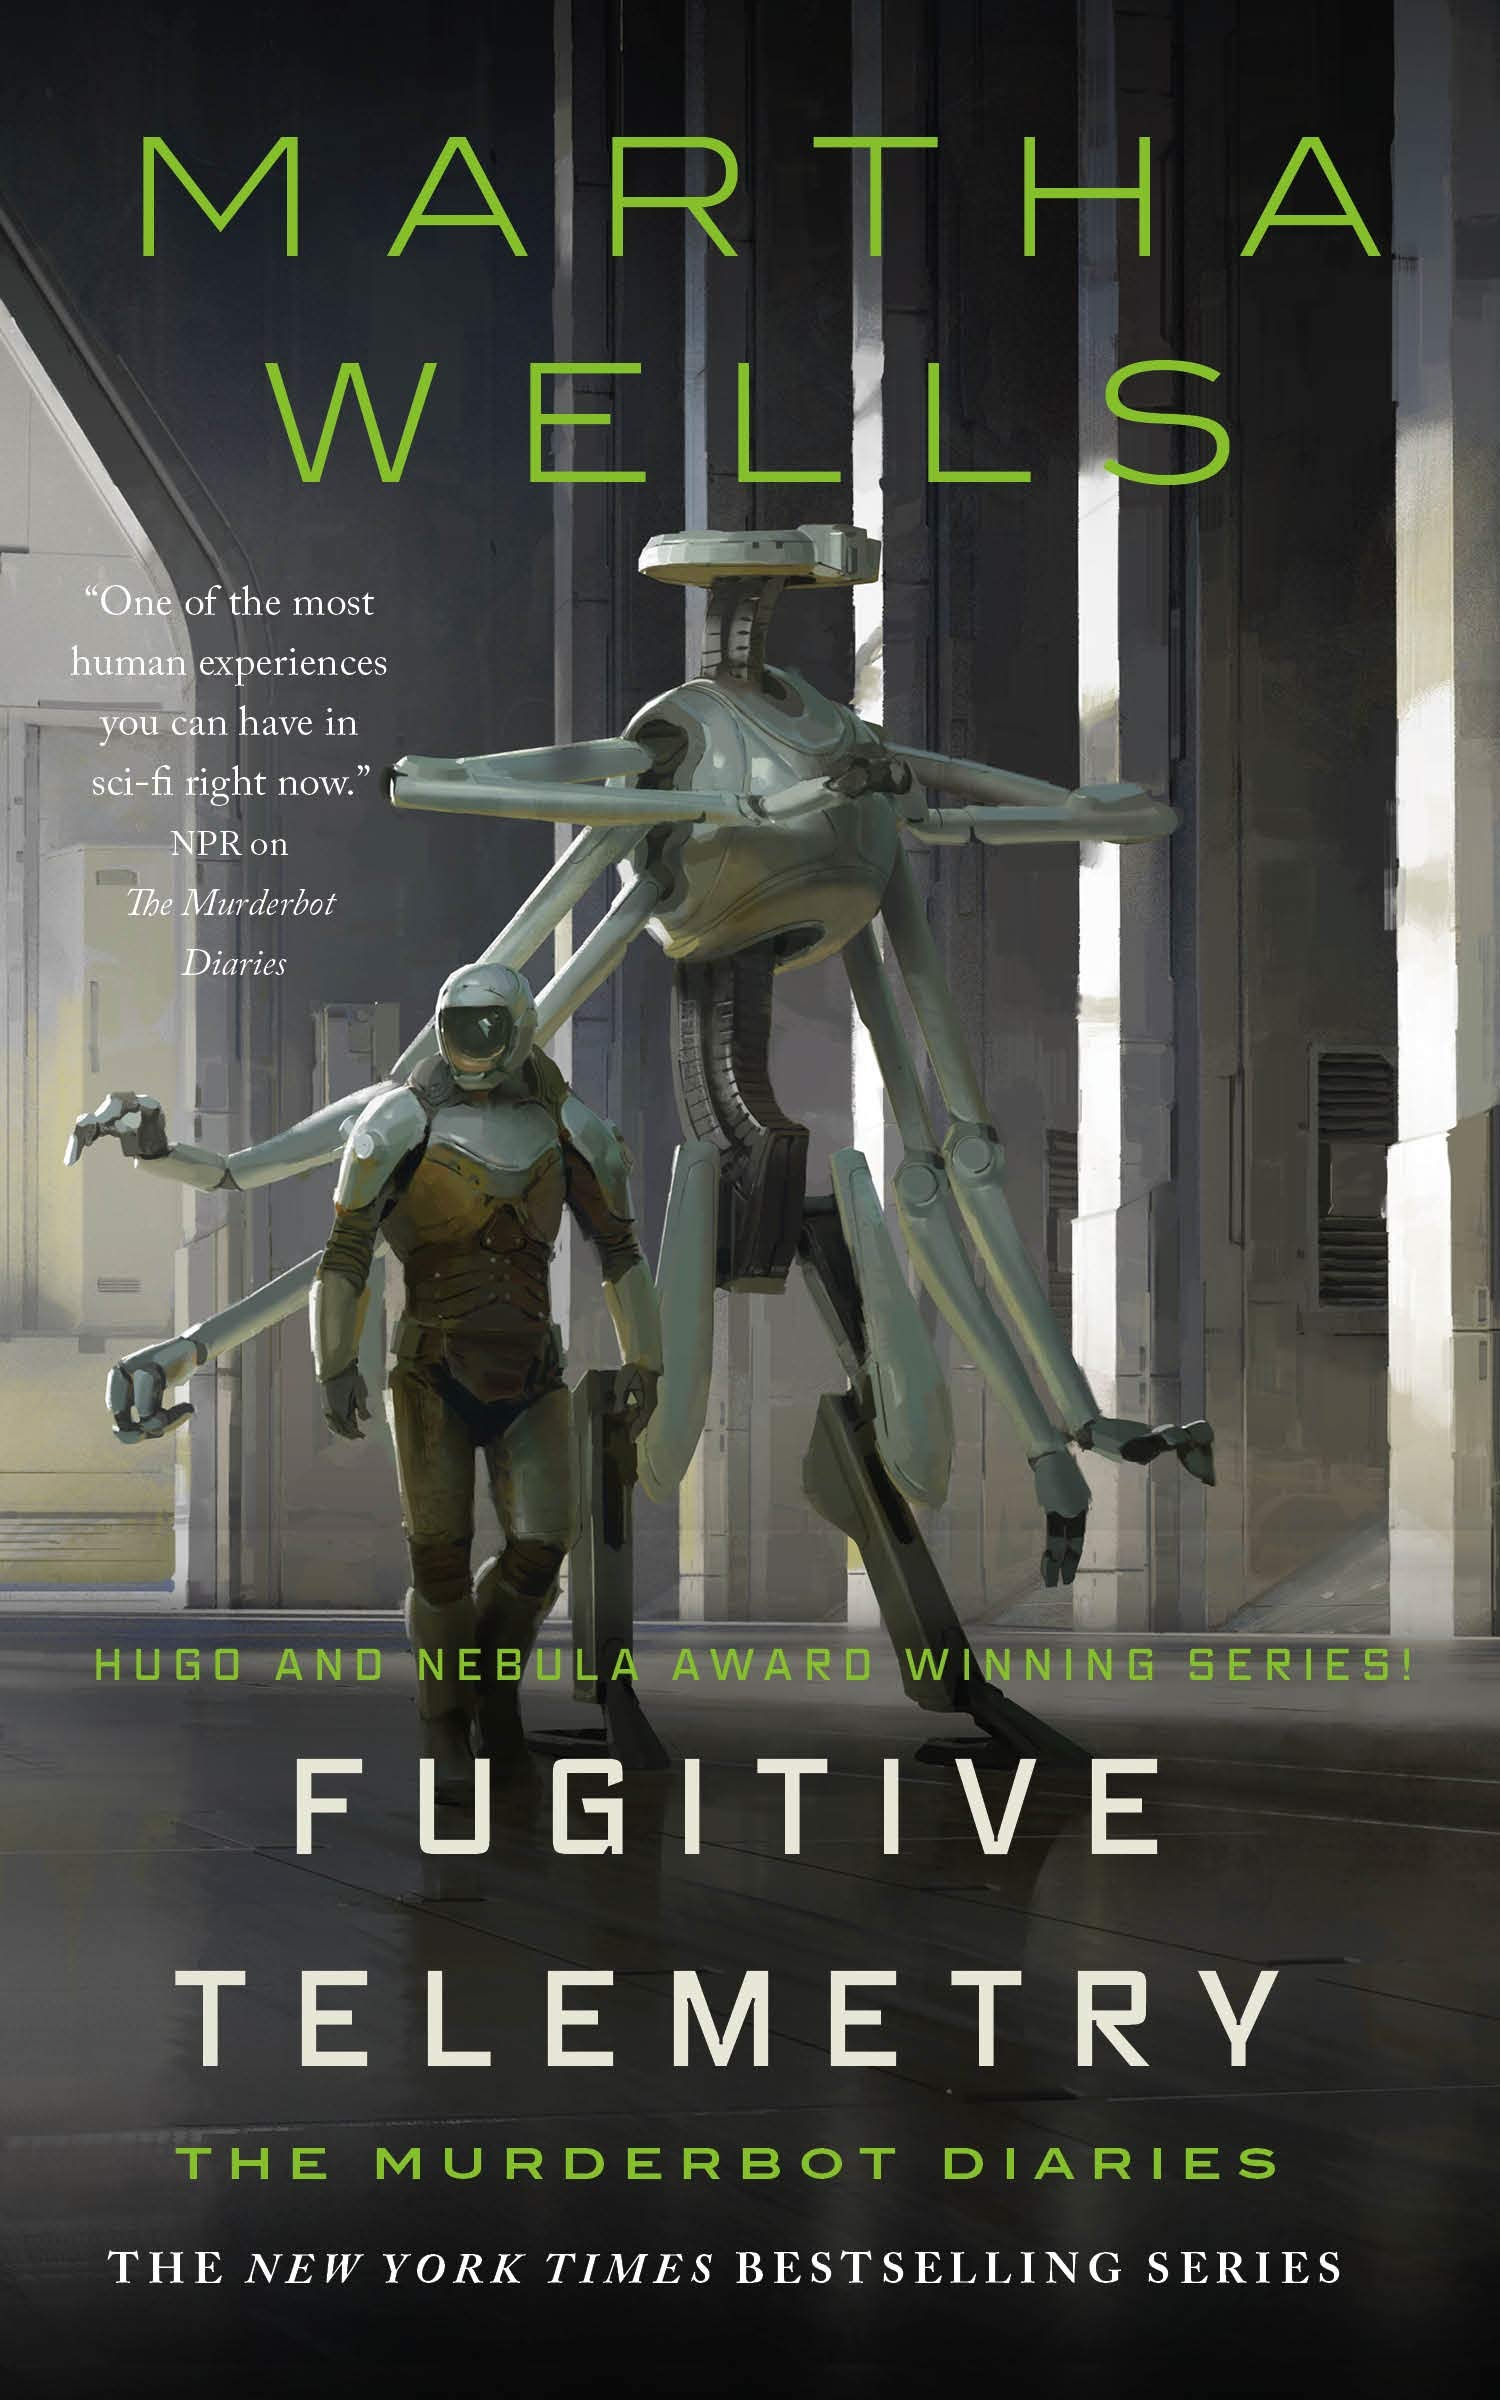 Fugitive Telemetry (The Murderbot Diaries, 6): Wells, Martha:  9781250765376: Amazon.com: Books